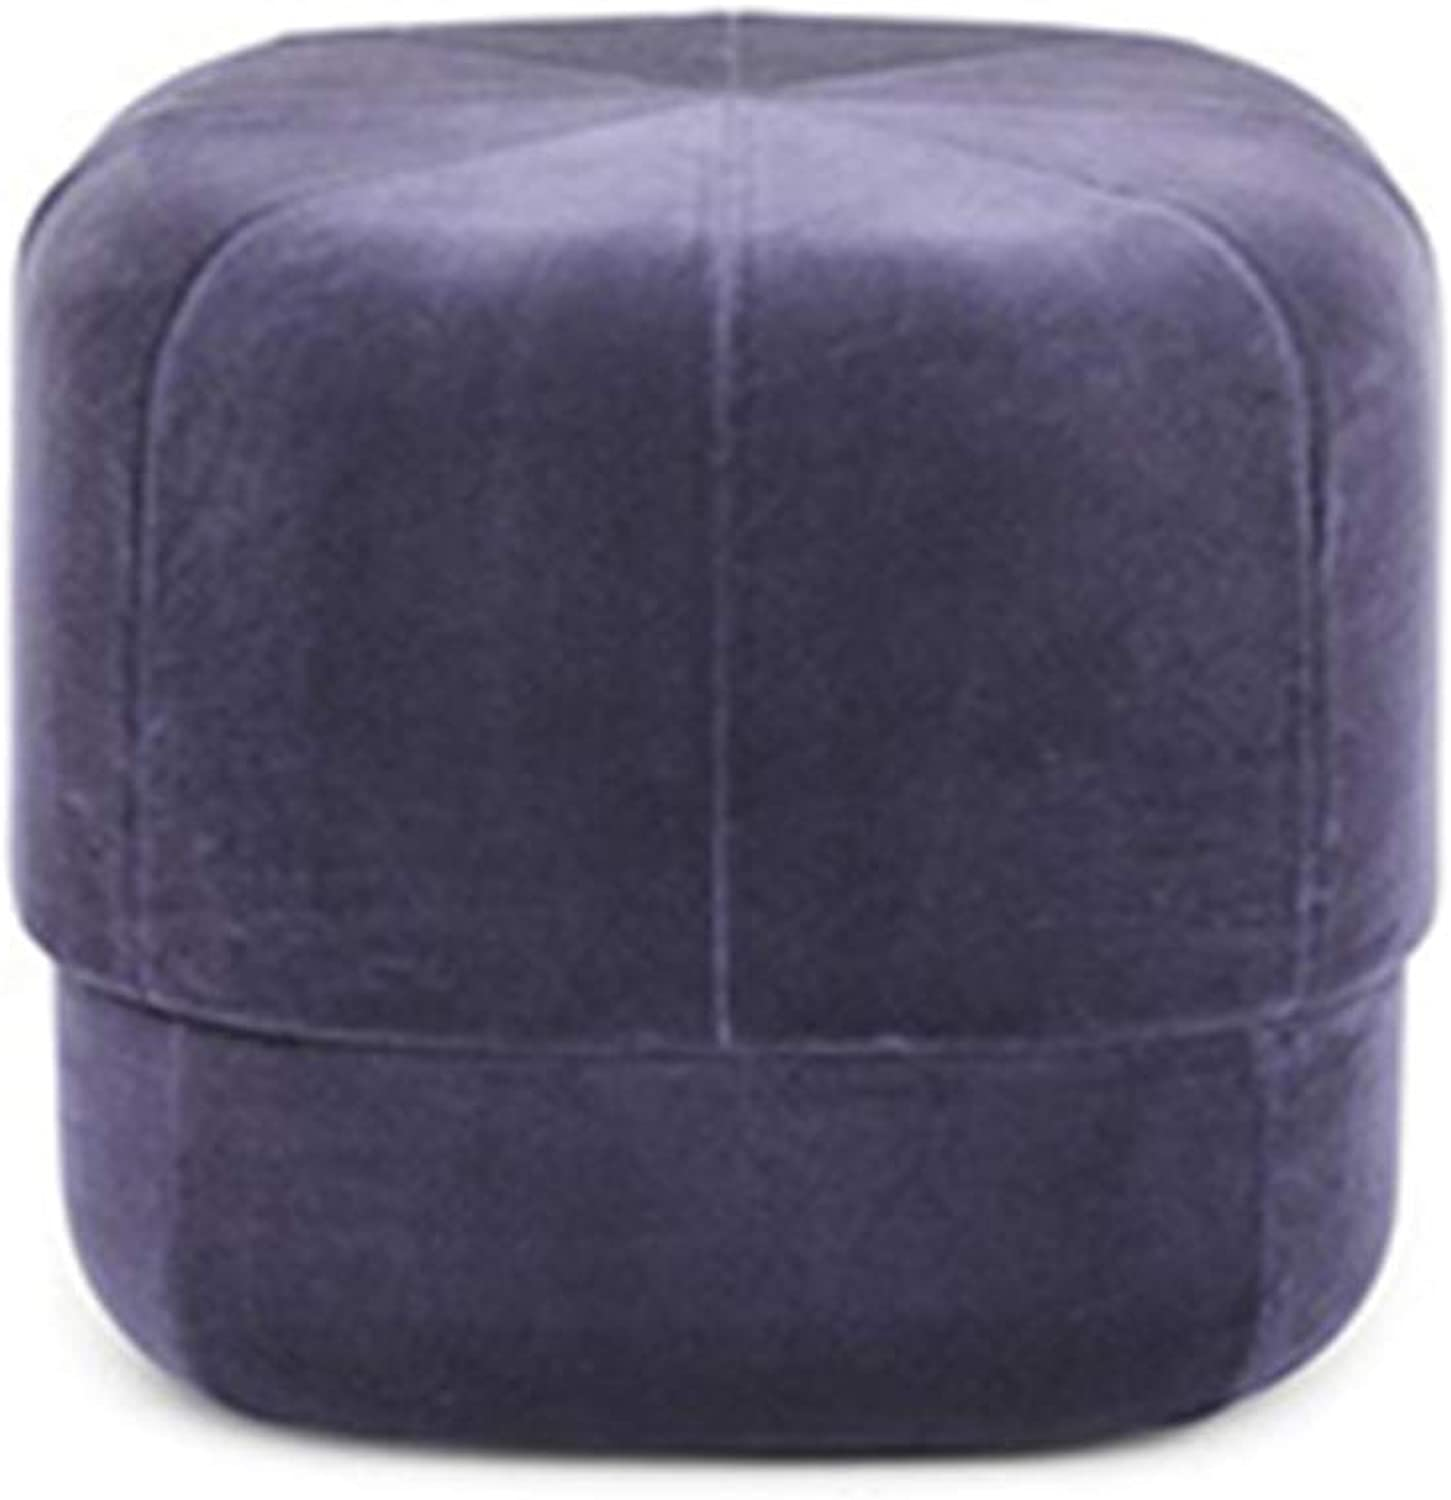 Sofa Stool Change shoes Stool Solid Wood Cotton Creative Multifunctional Makeup Stool 8 colors (color   Purple, Size   40  40 cm)